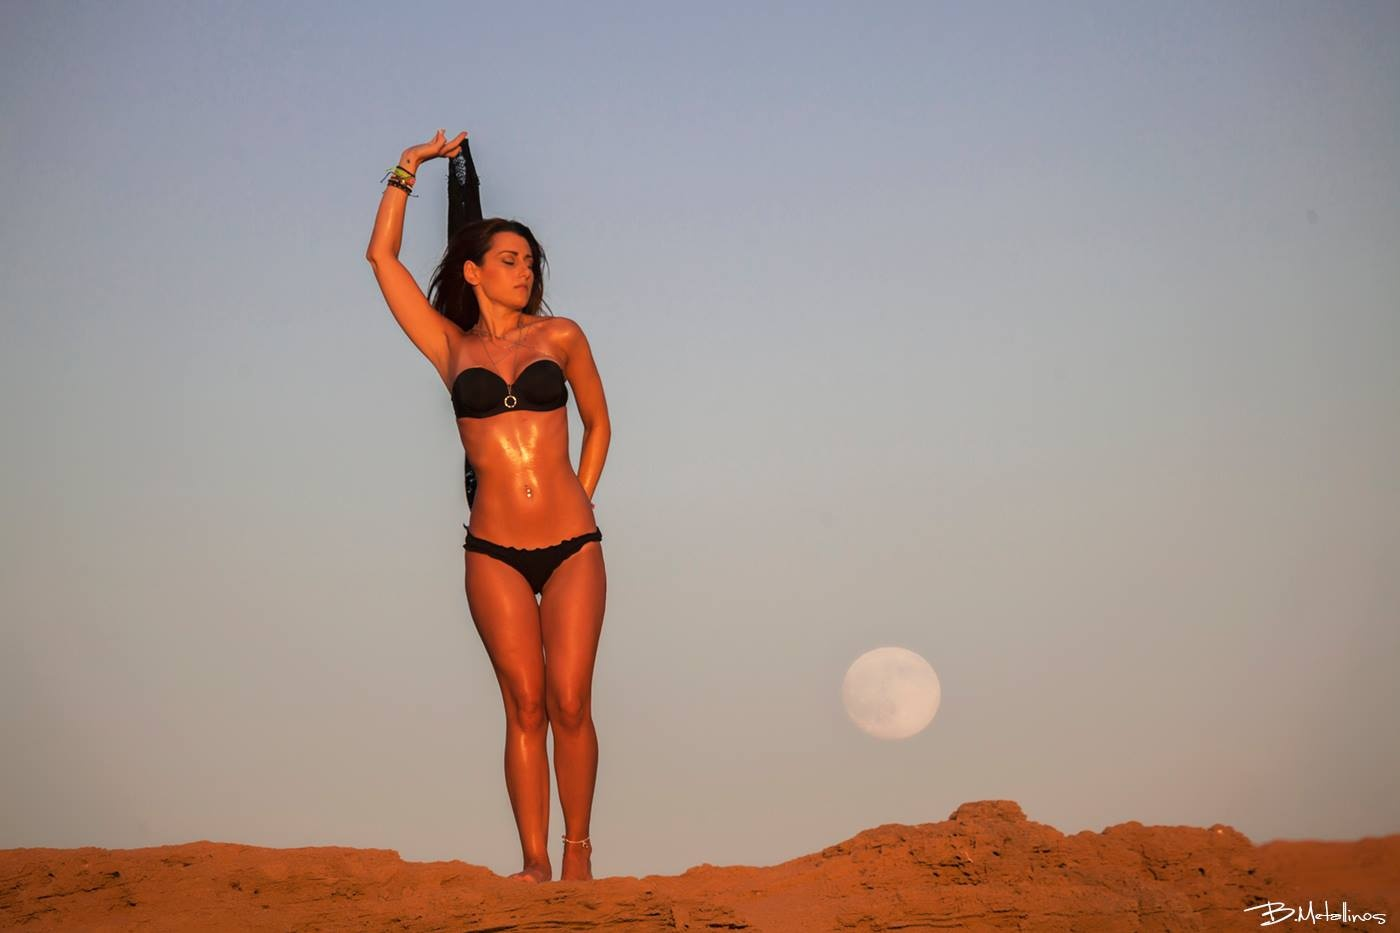 In love with full moon by Bill Metallinos